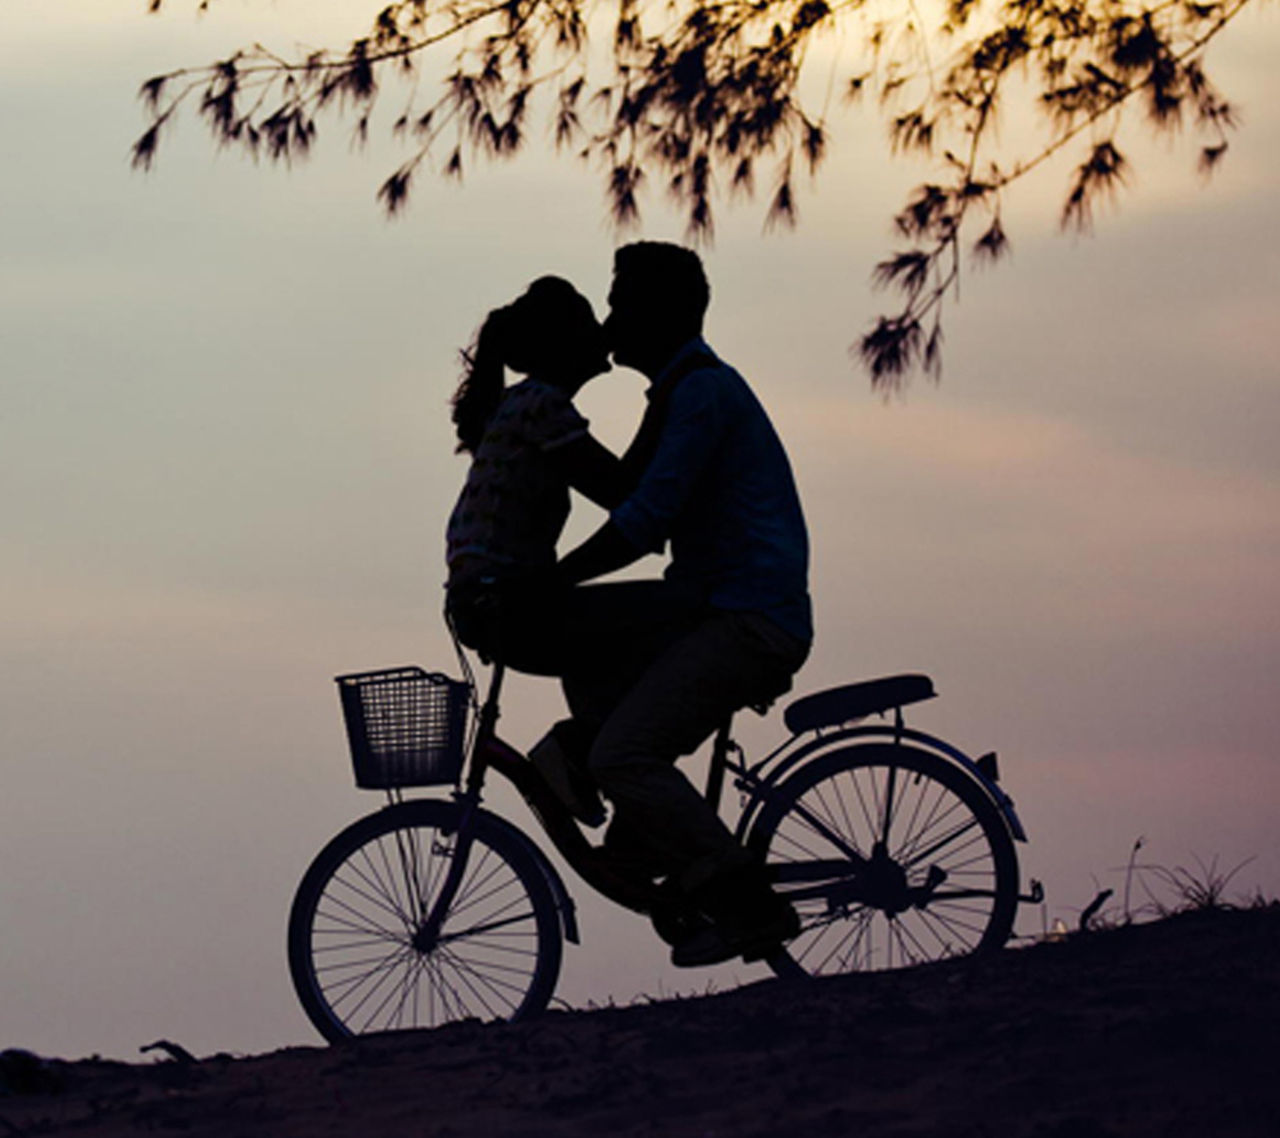 two people, togetherness, sunset, love, bicycle, silhouette, couple - relationship, bonding, outdoors, sitting, side view, men, full length, tree, women, real people, childhood, motorcycle, nature, adult, day, sky, young adult, people